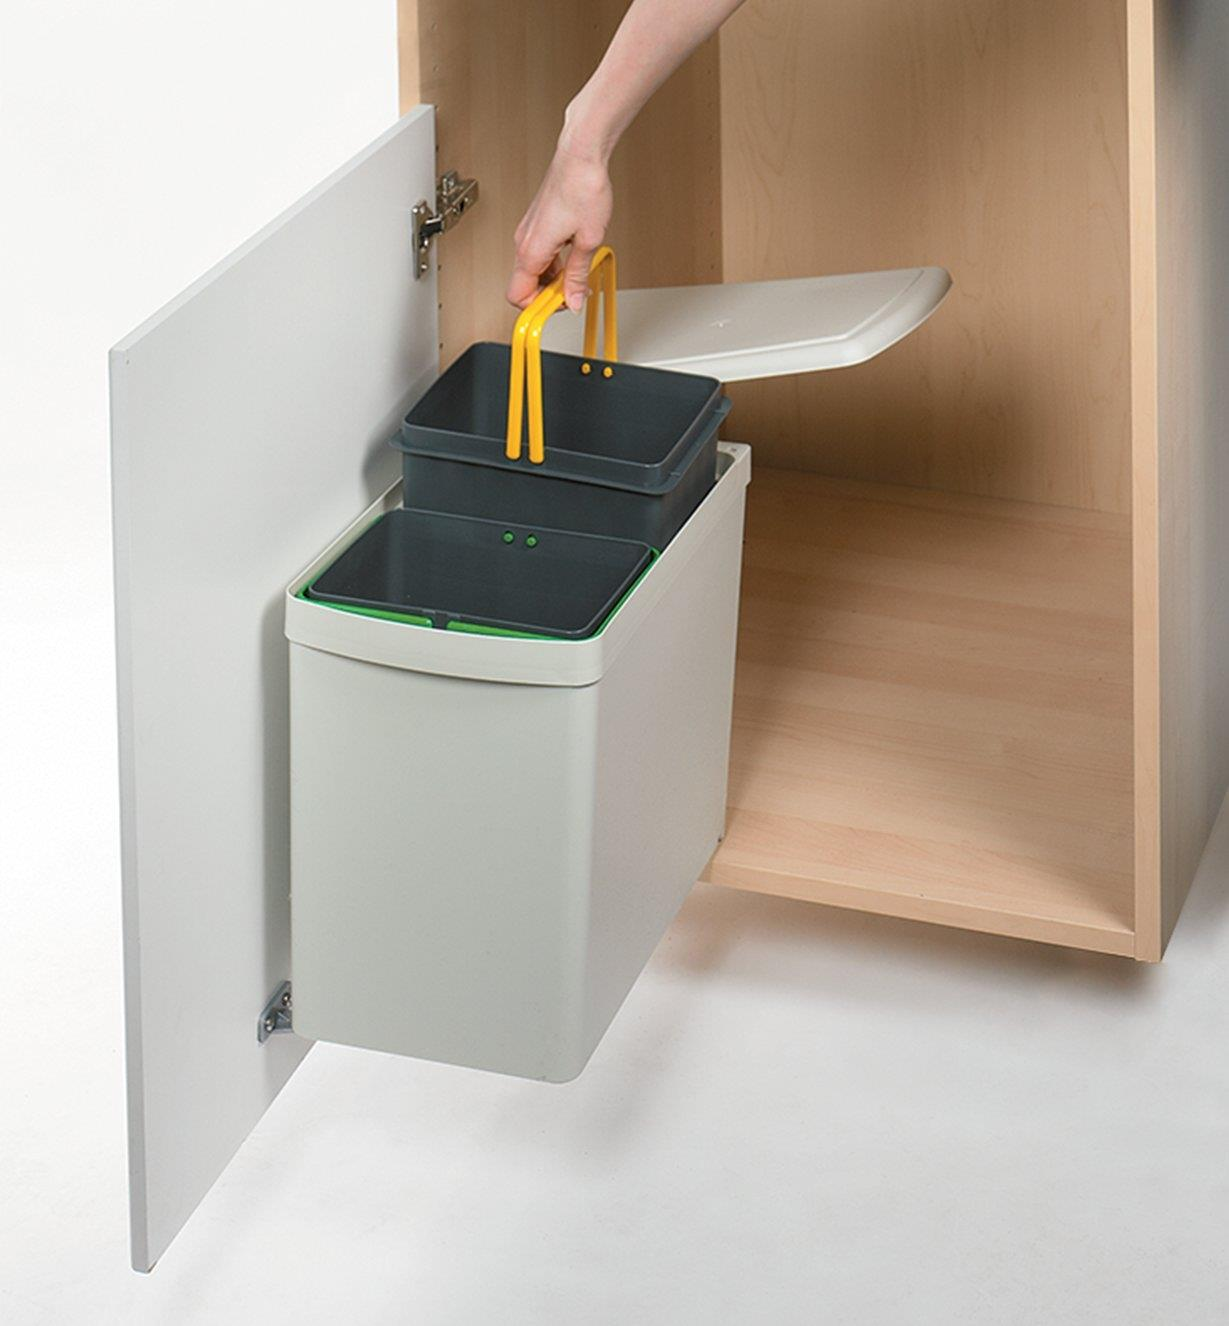 Lifting one of the bin inserts from the waste bin by the handles